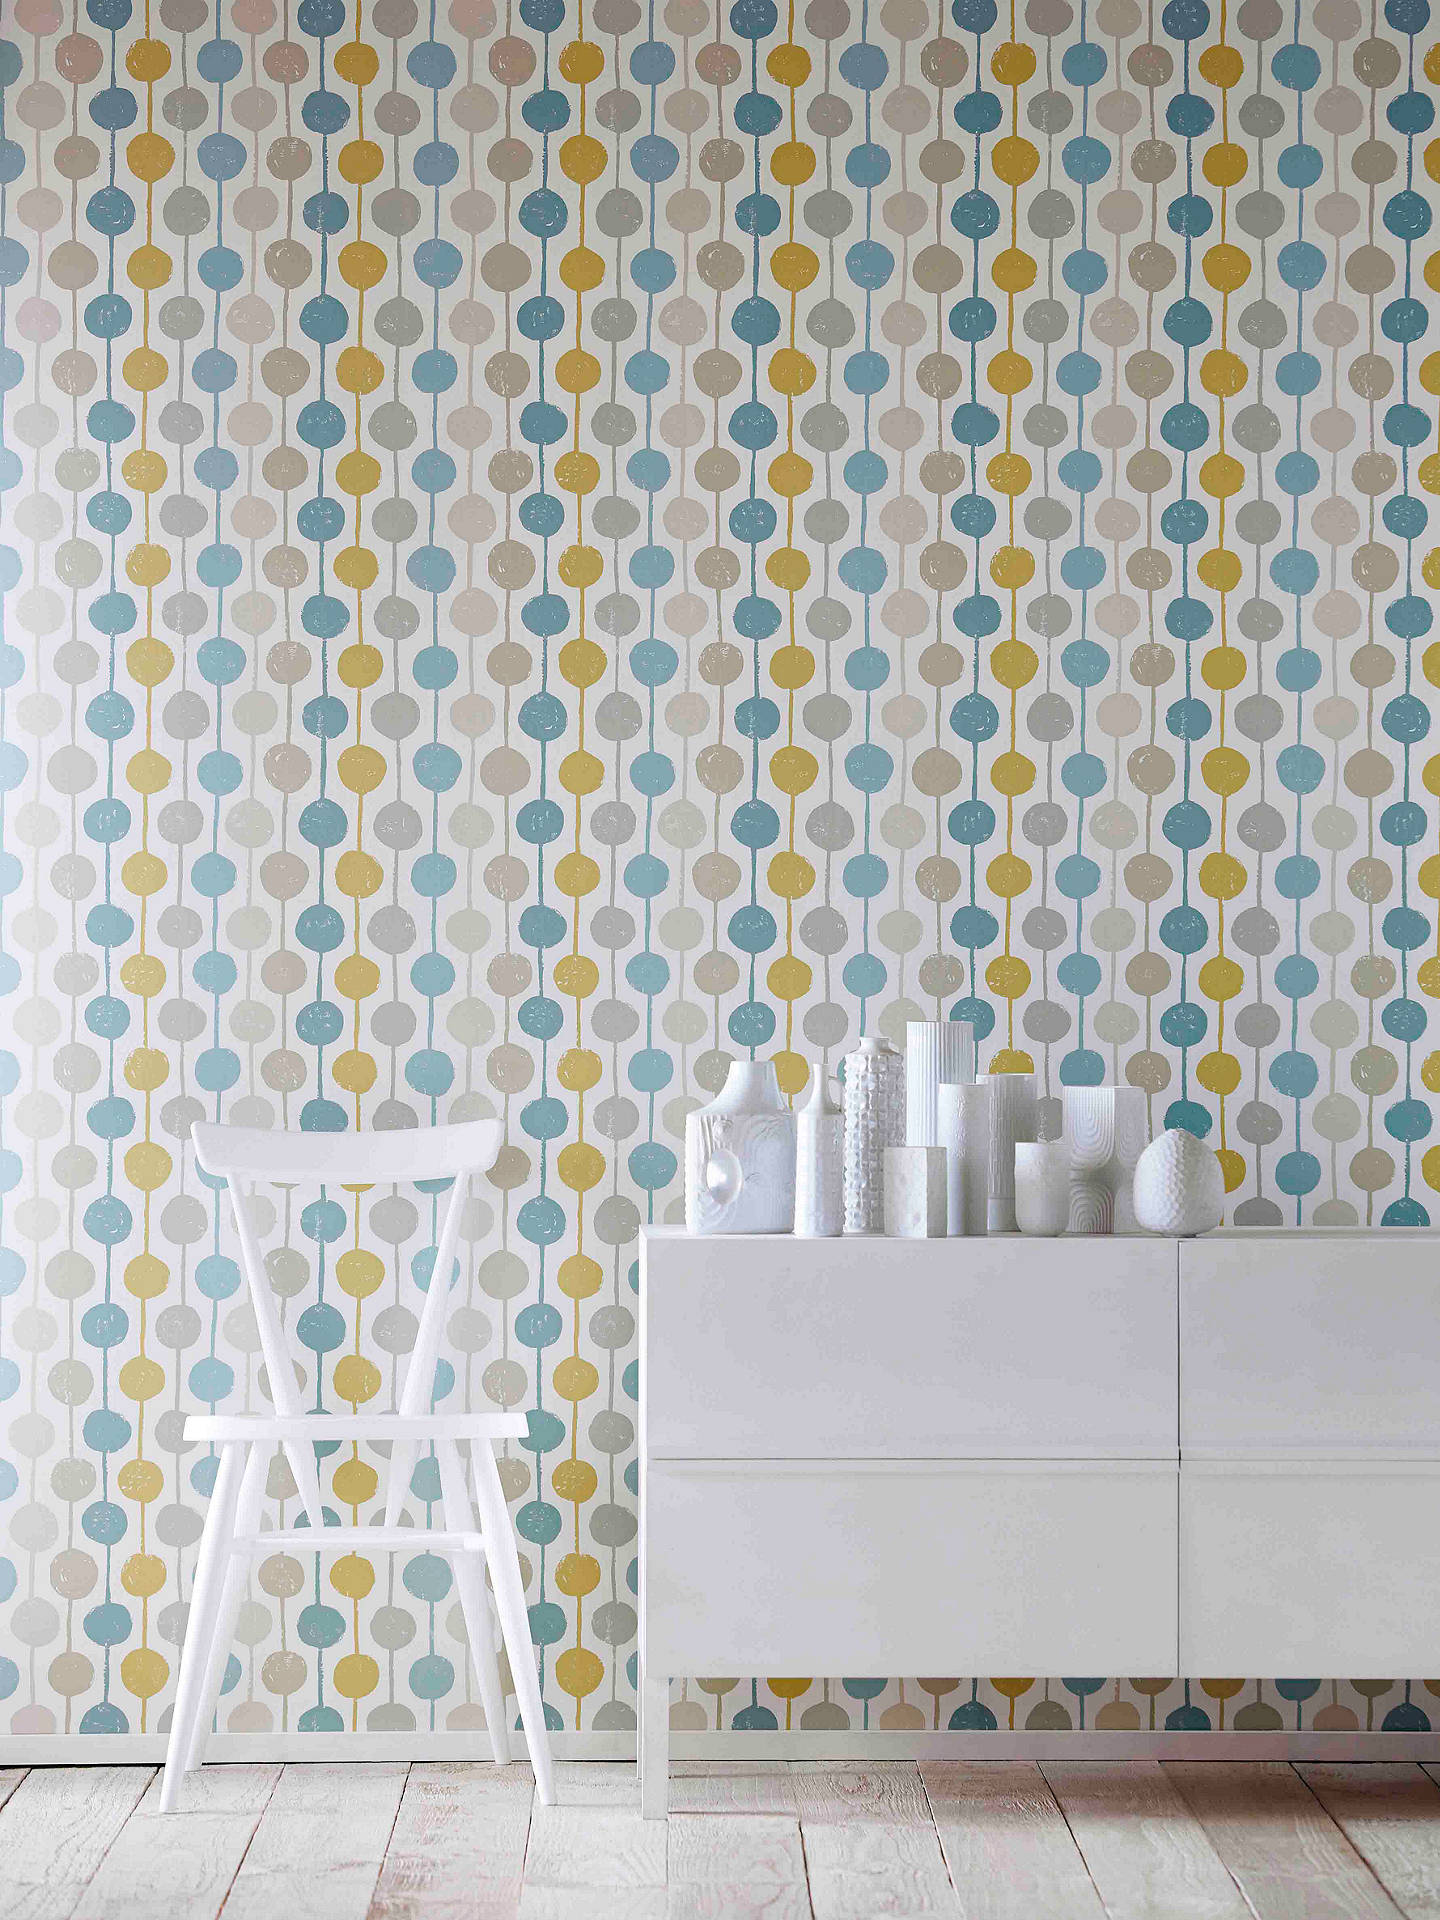 Buy Scion Taimi Wallpaper, Seaglass/Chalk, 111126 Online at johnlewis.com